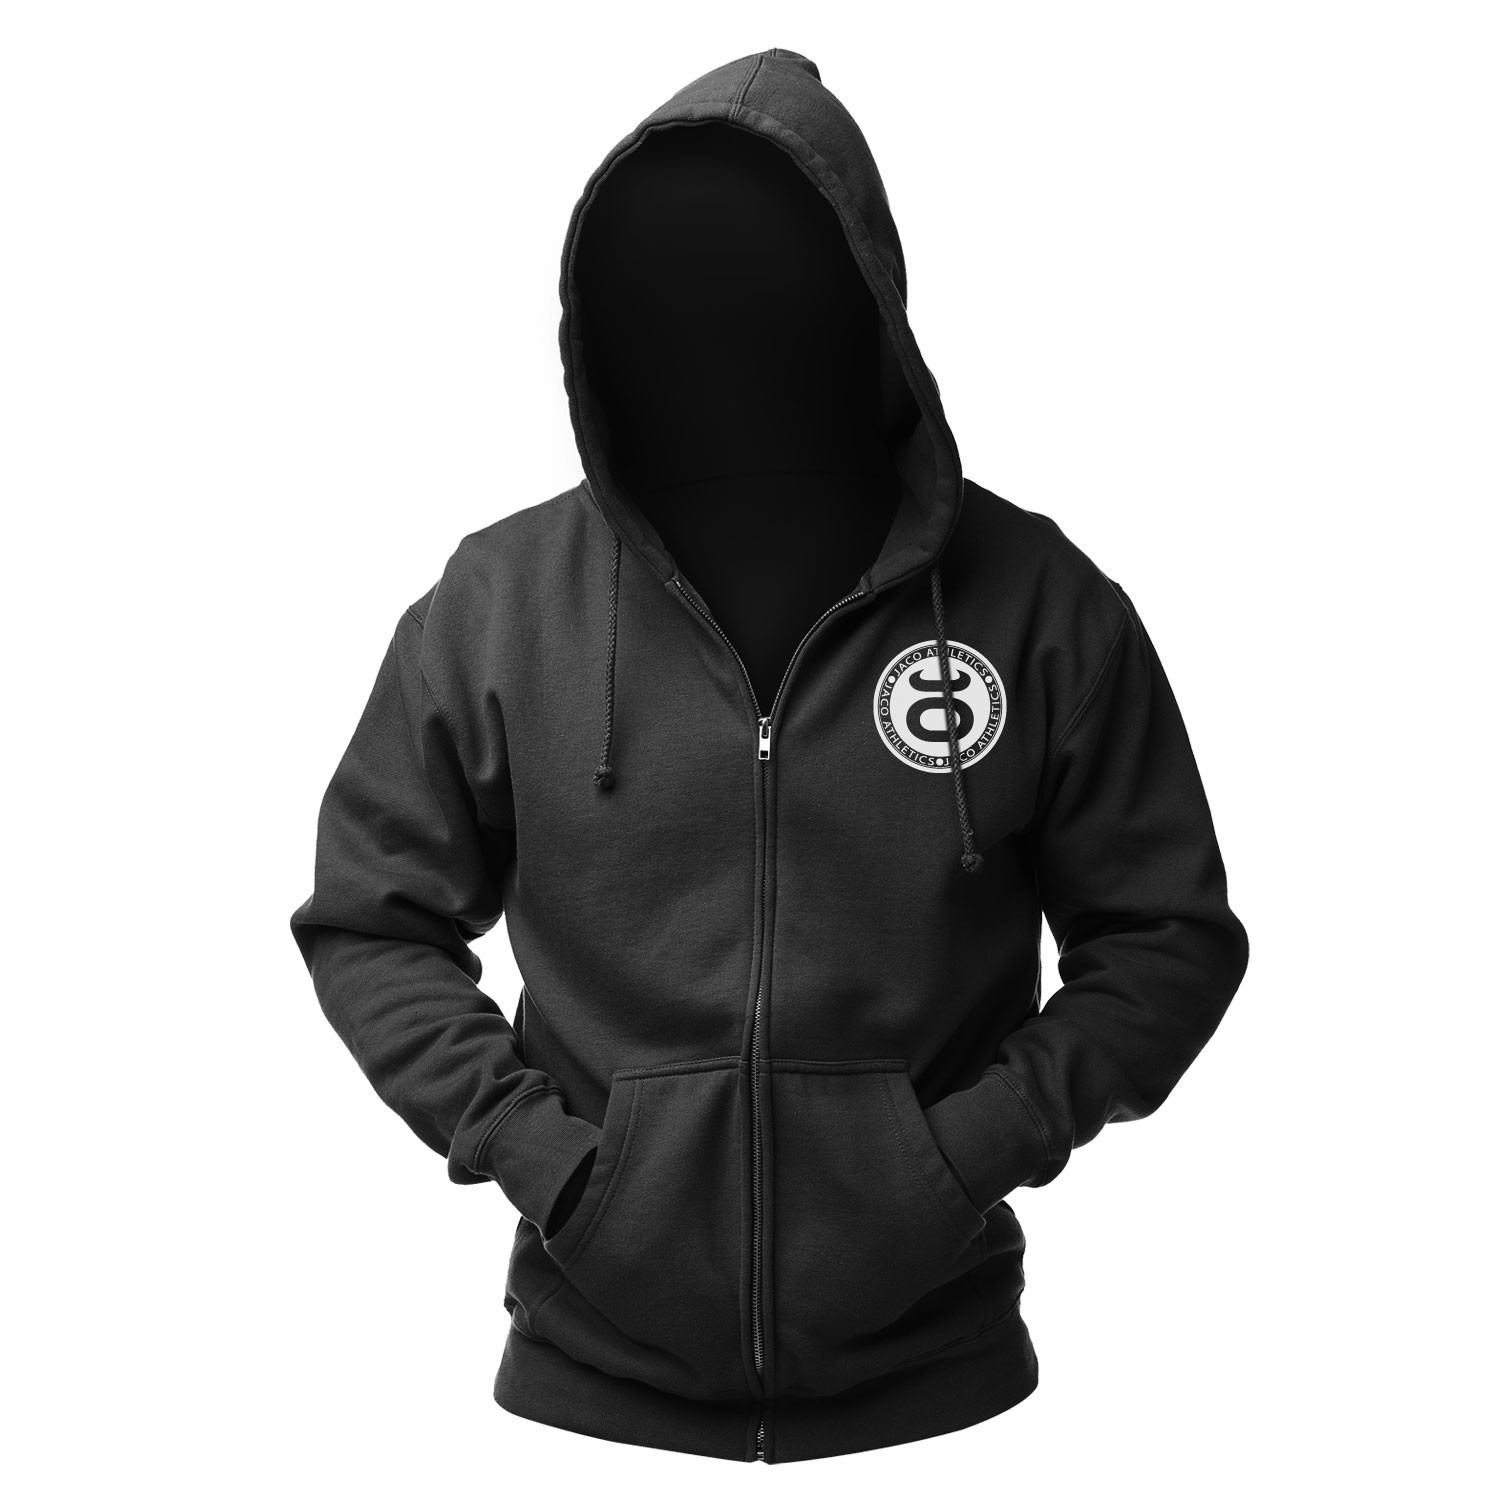 JACO Athletics Team Hoodie (Black/White)